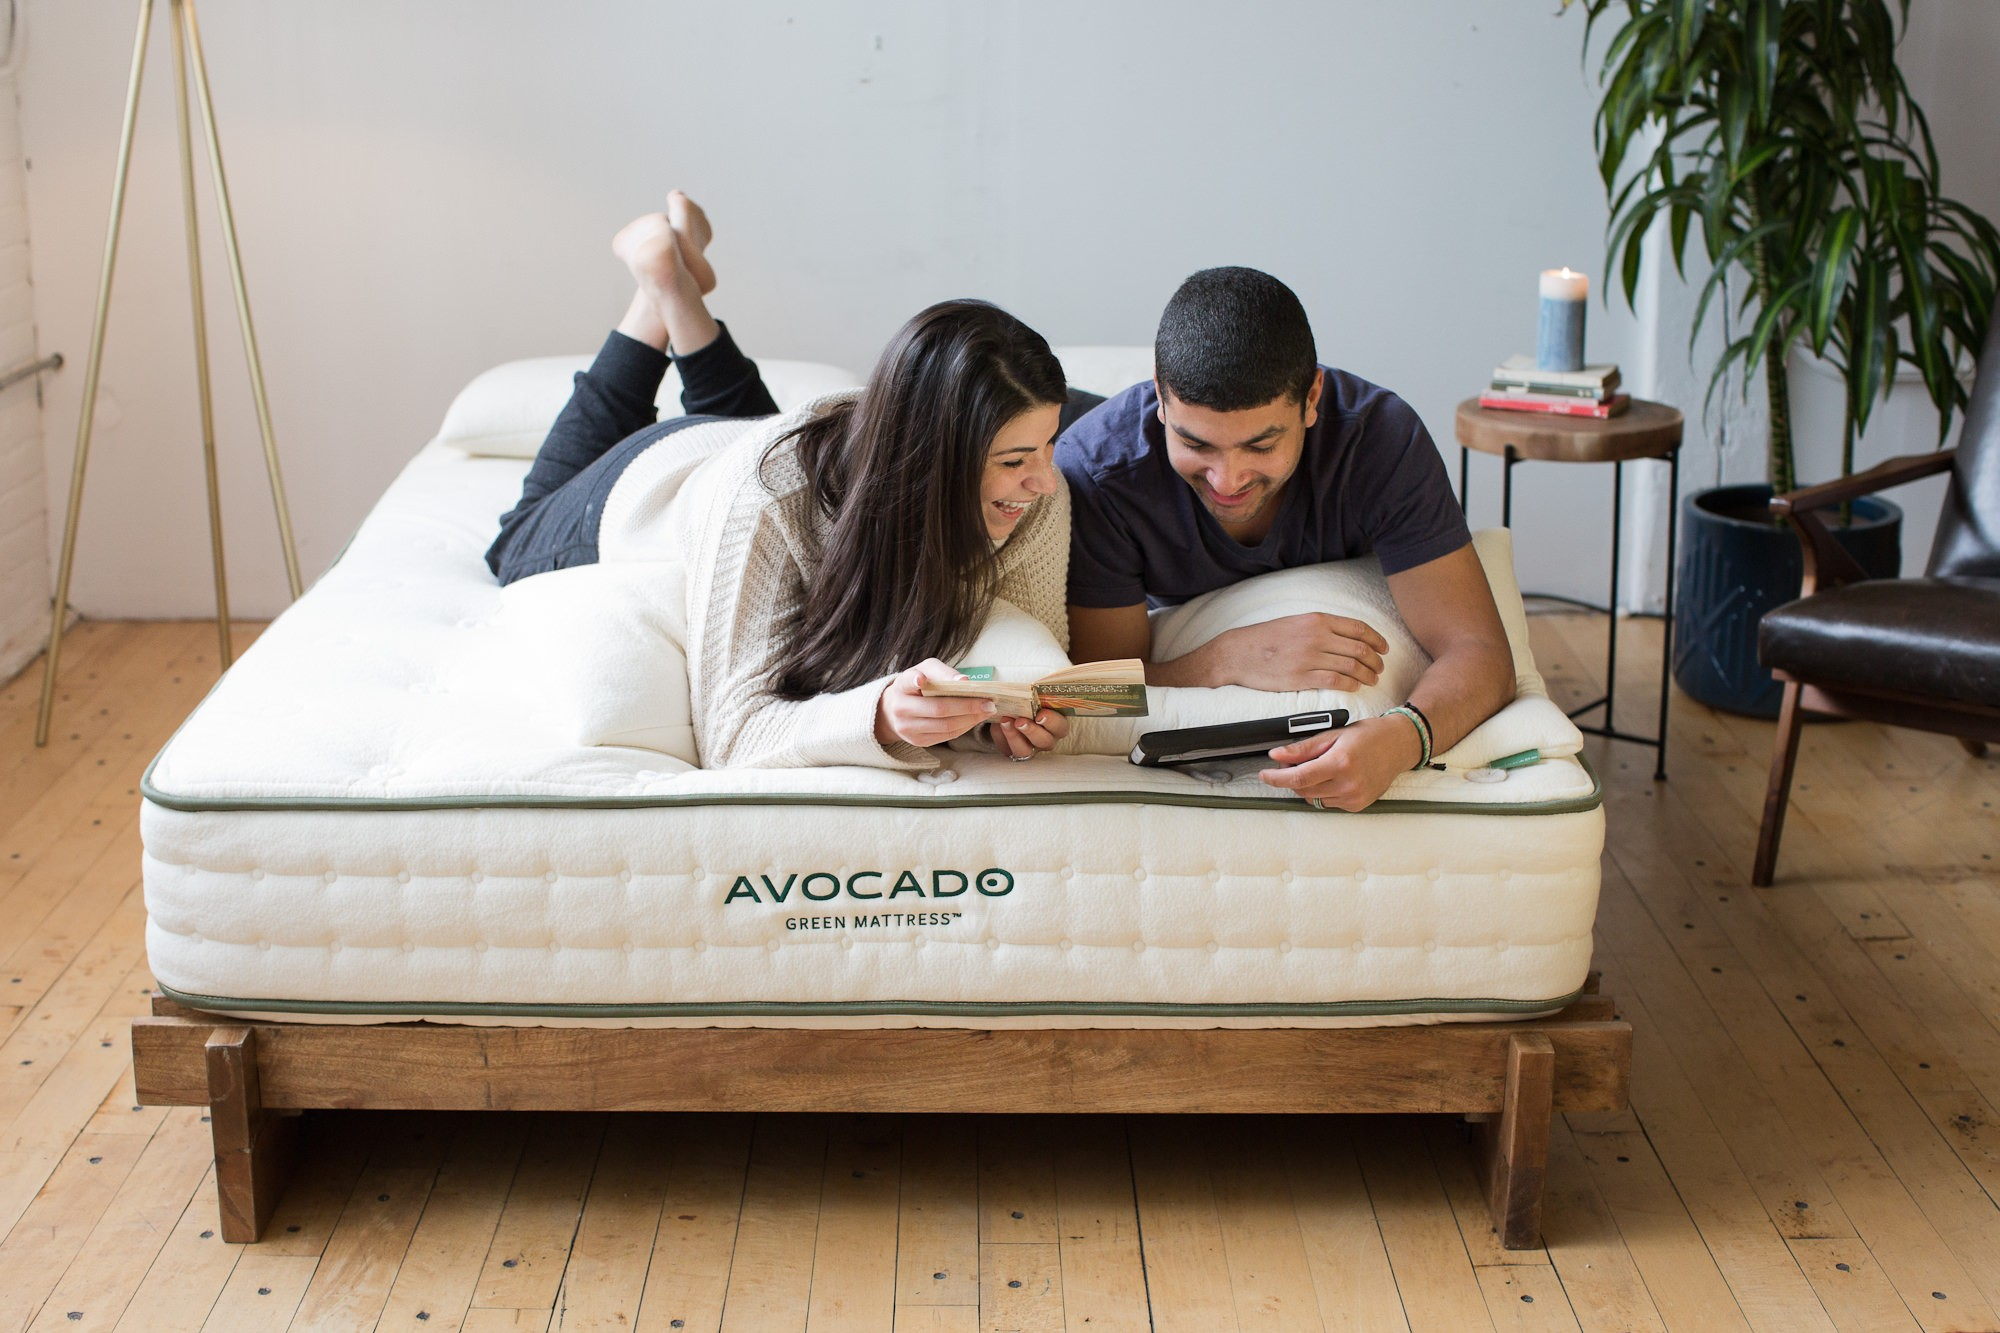 Avocado mattress in bedroom